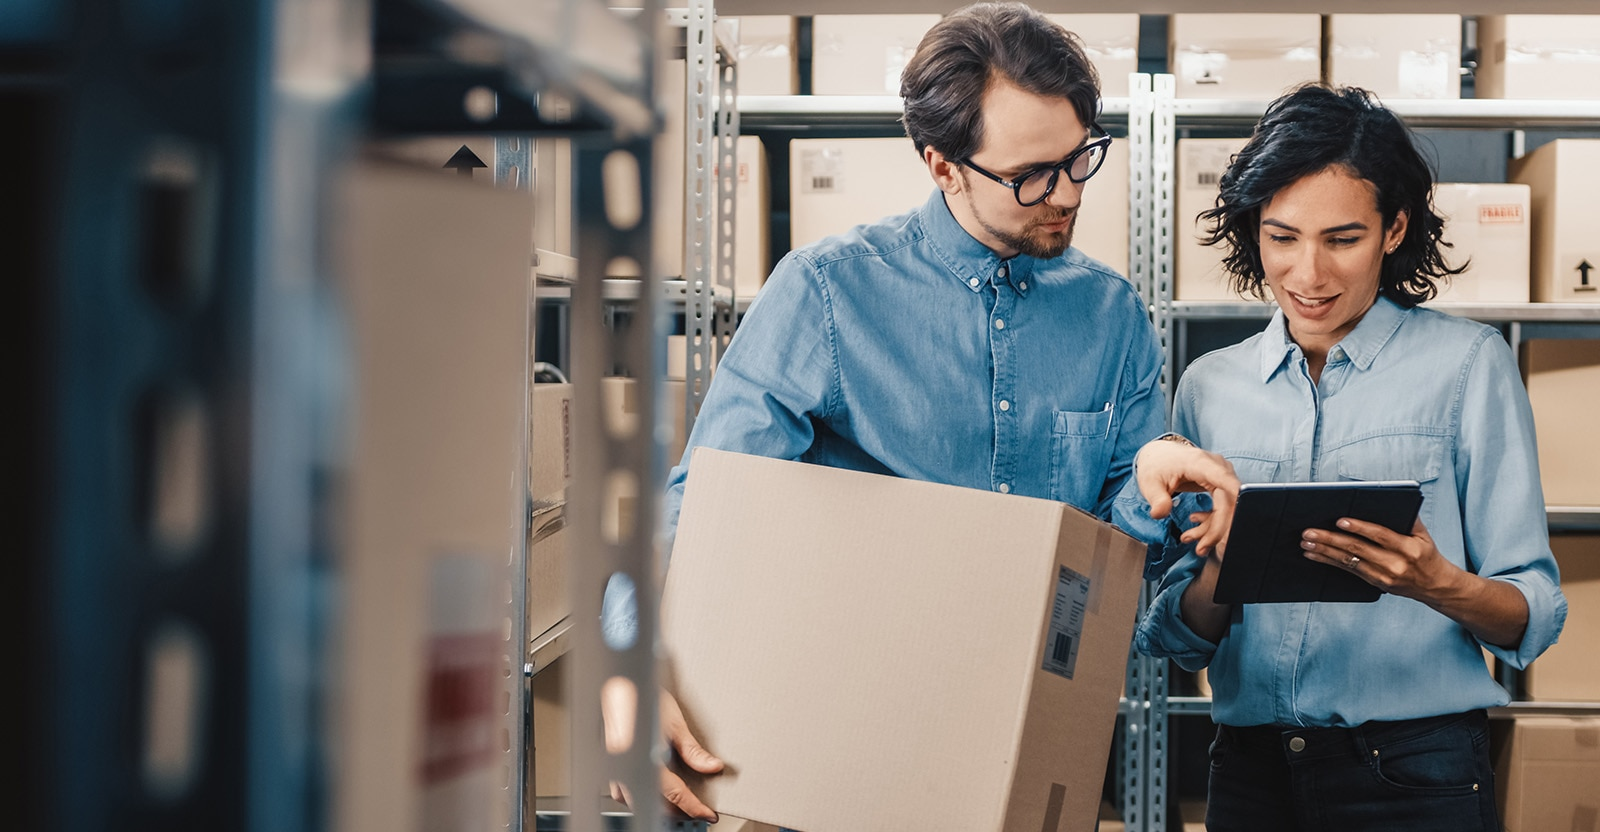 Woman in warehouse with iPad consulting with man carrying box